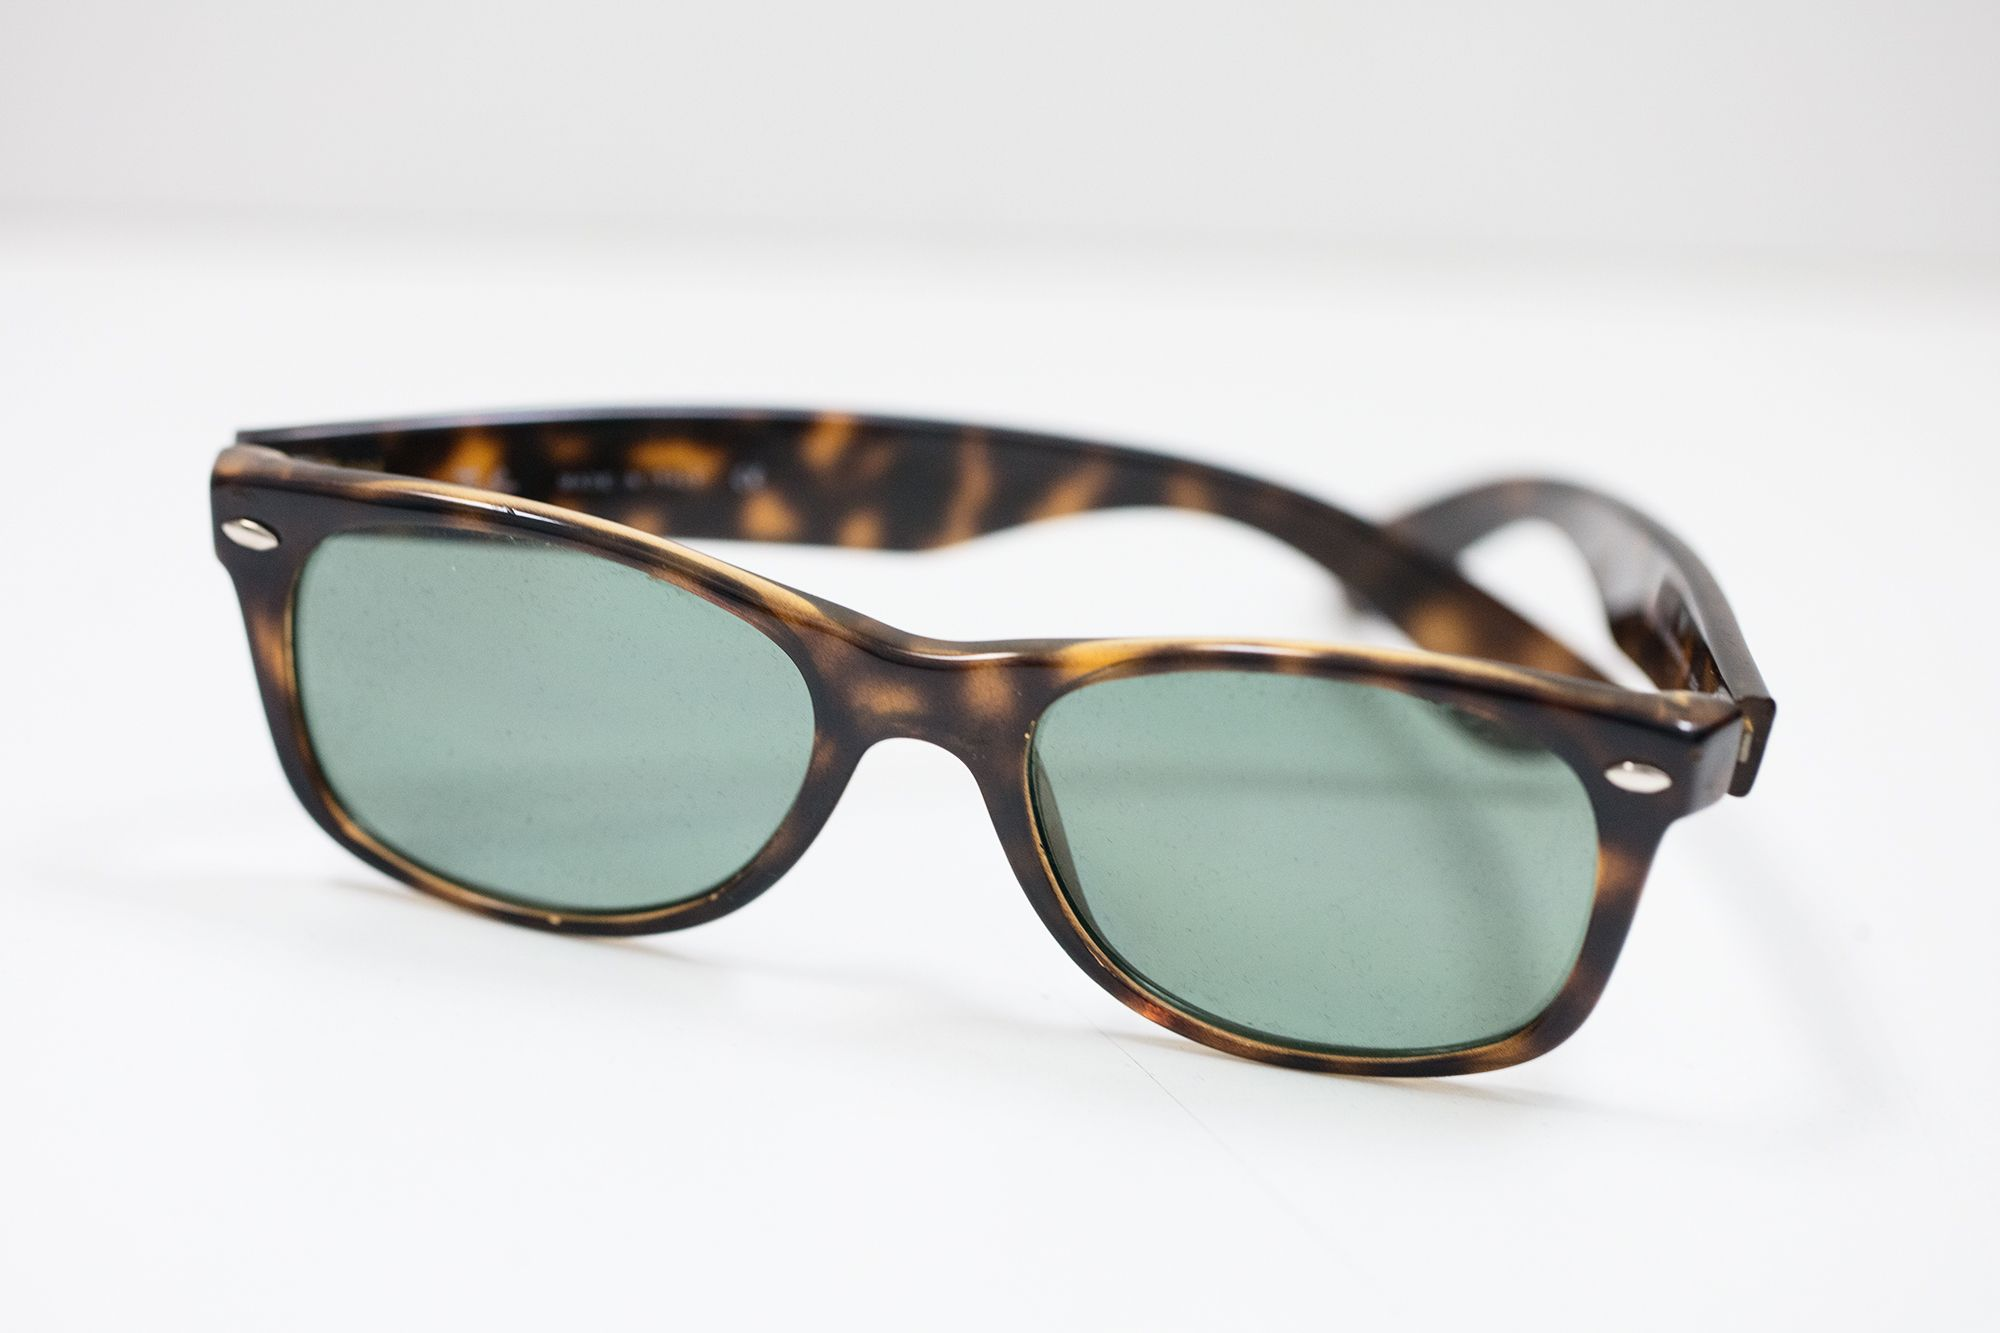 34adc53d8a Rayban Tortoise Shell Wayfarers with case #A6251826 | Accessories ...